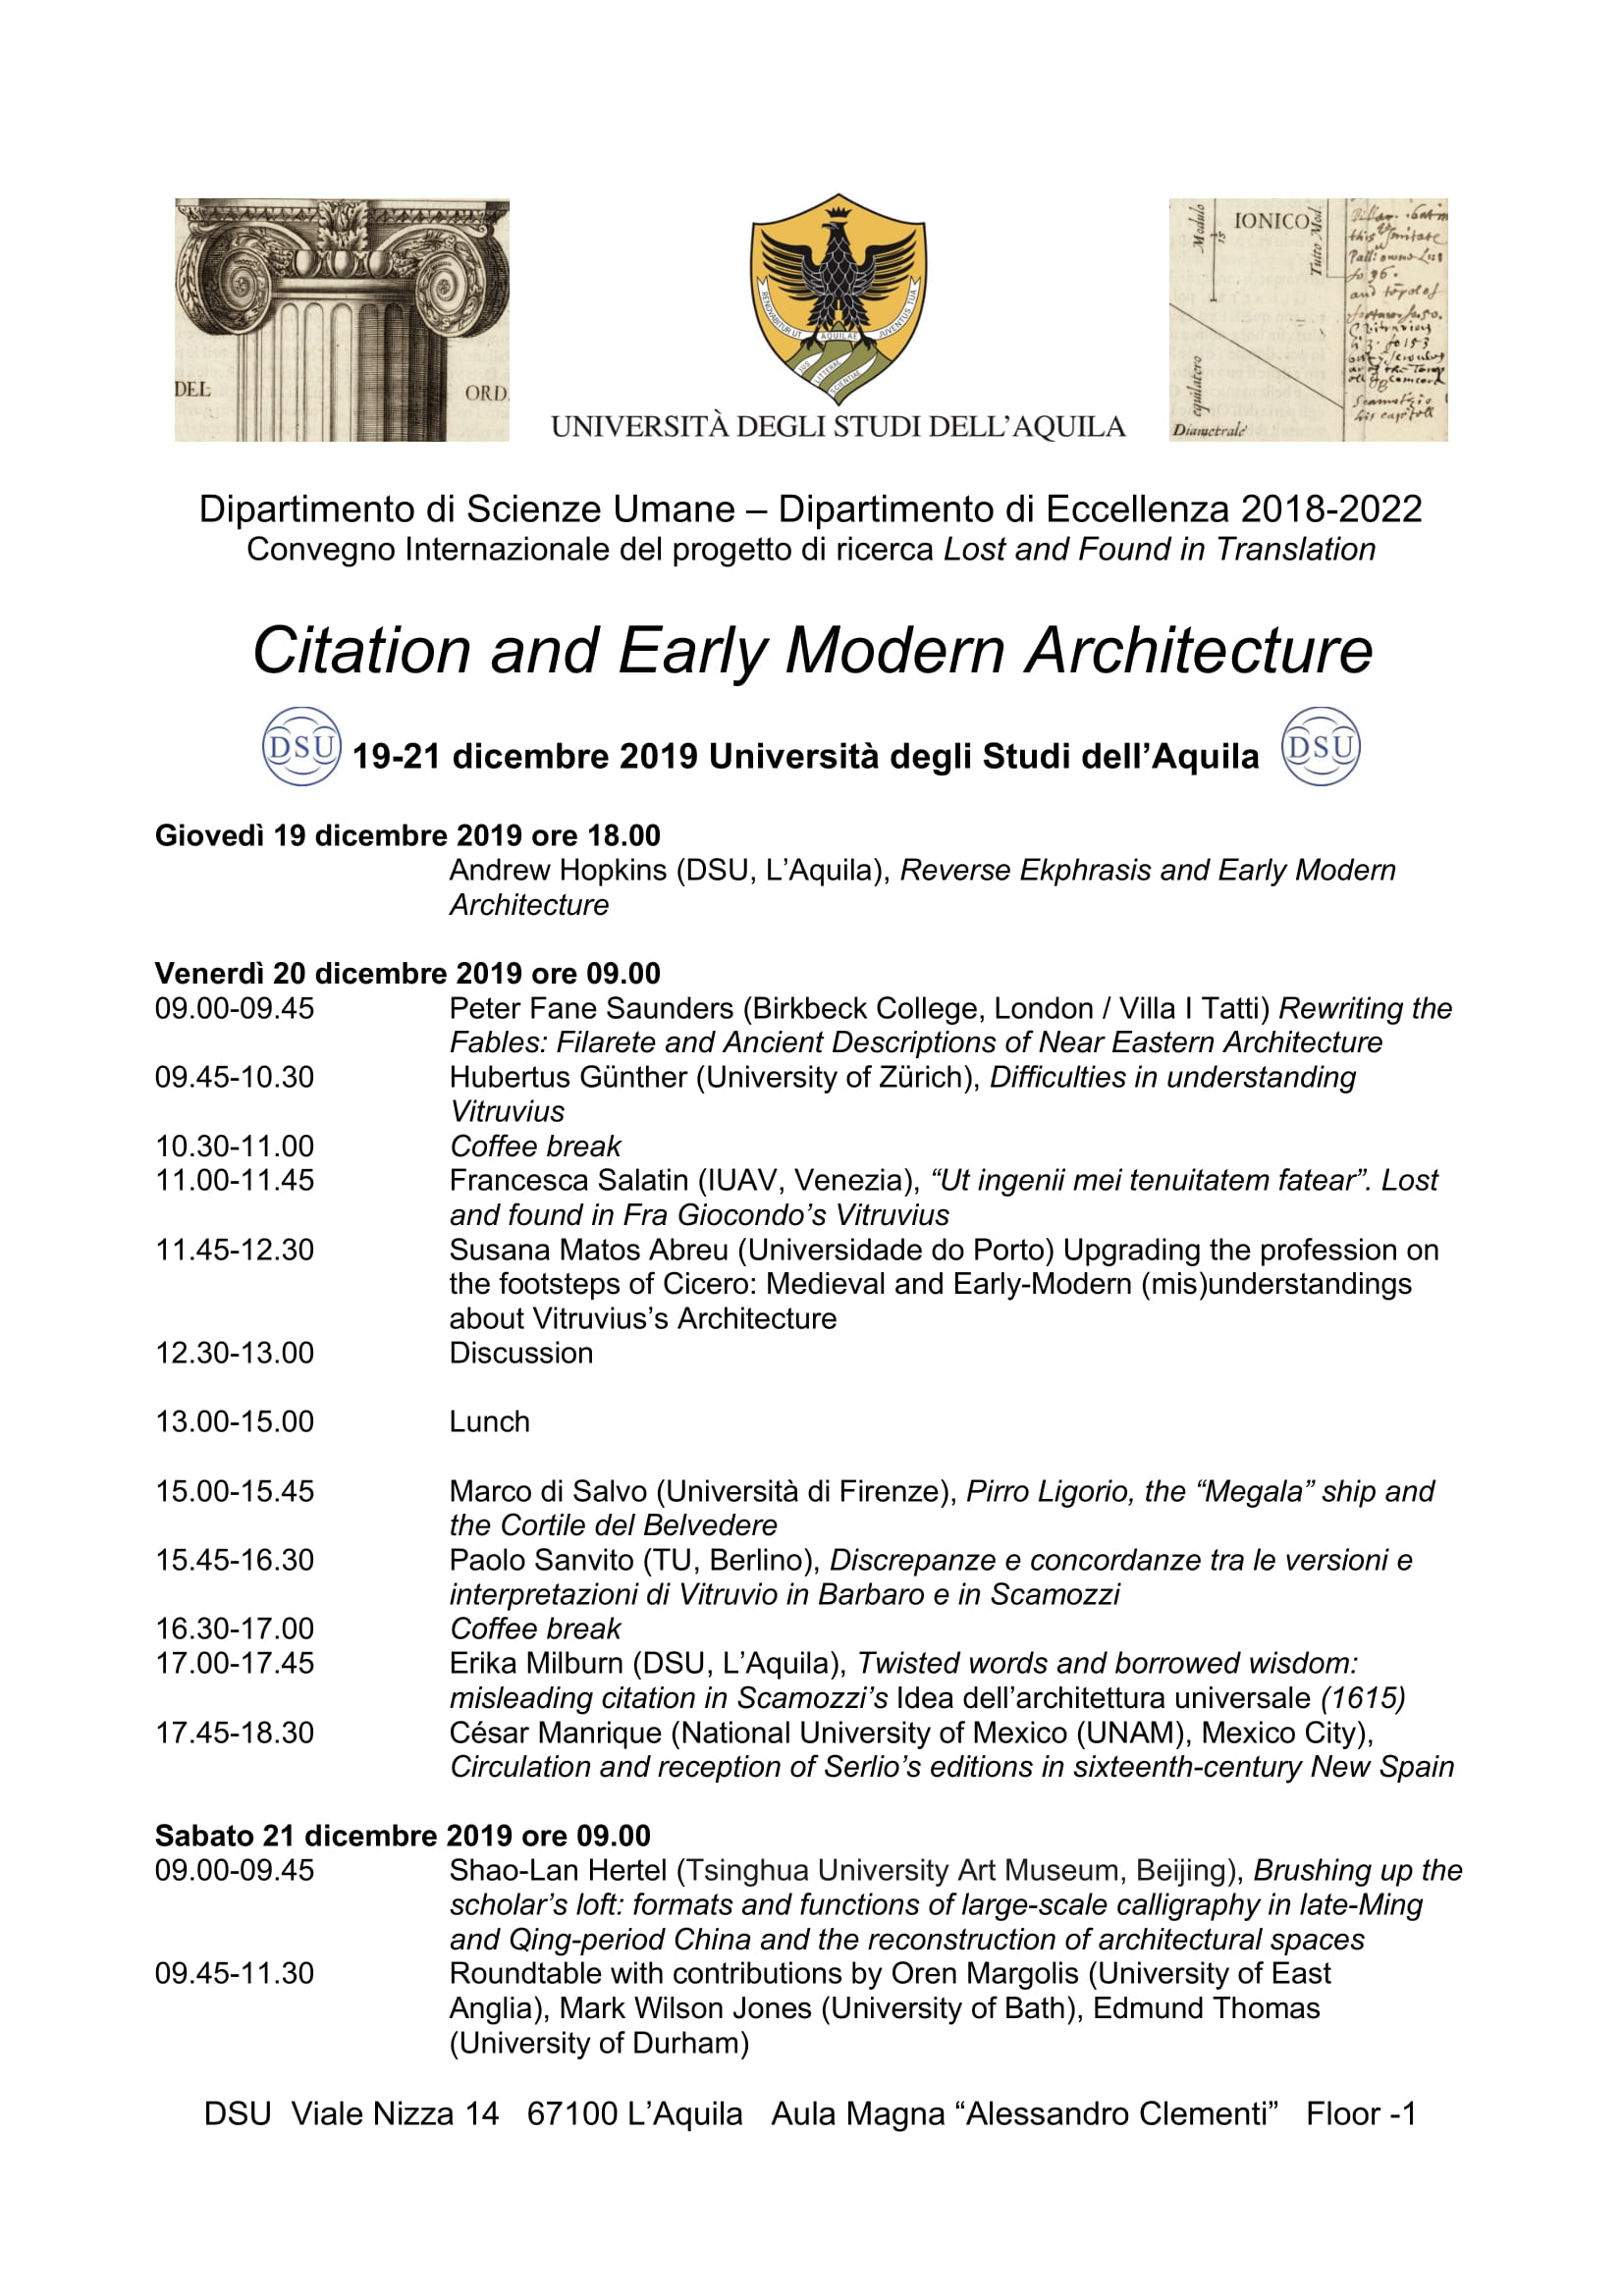 Convegno Citation and early modern architecture